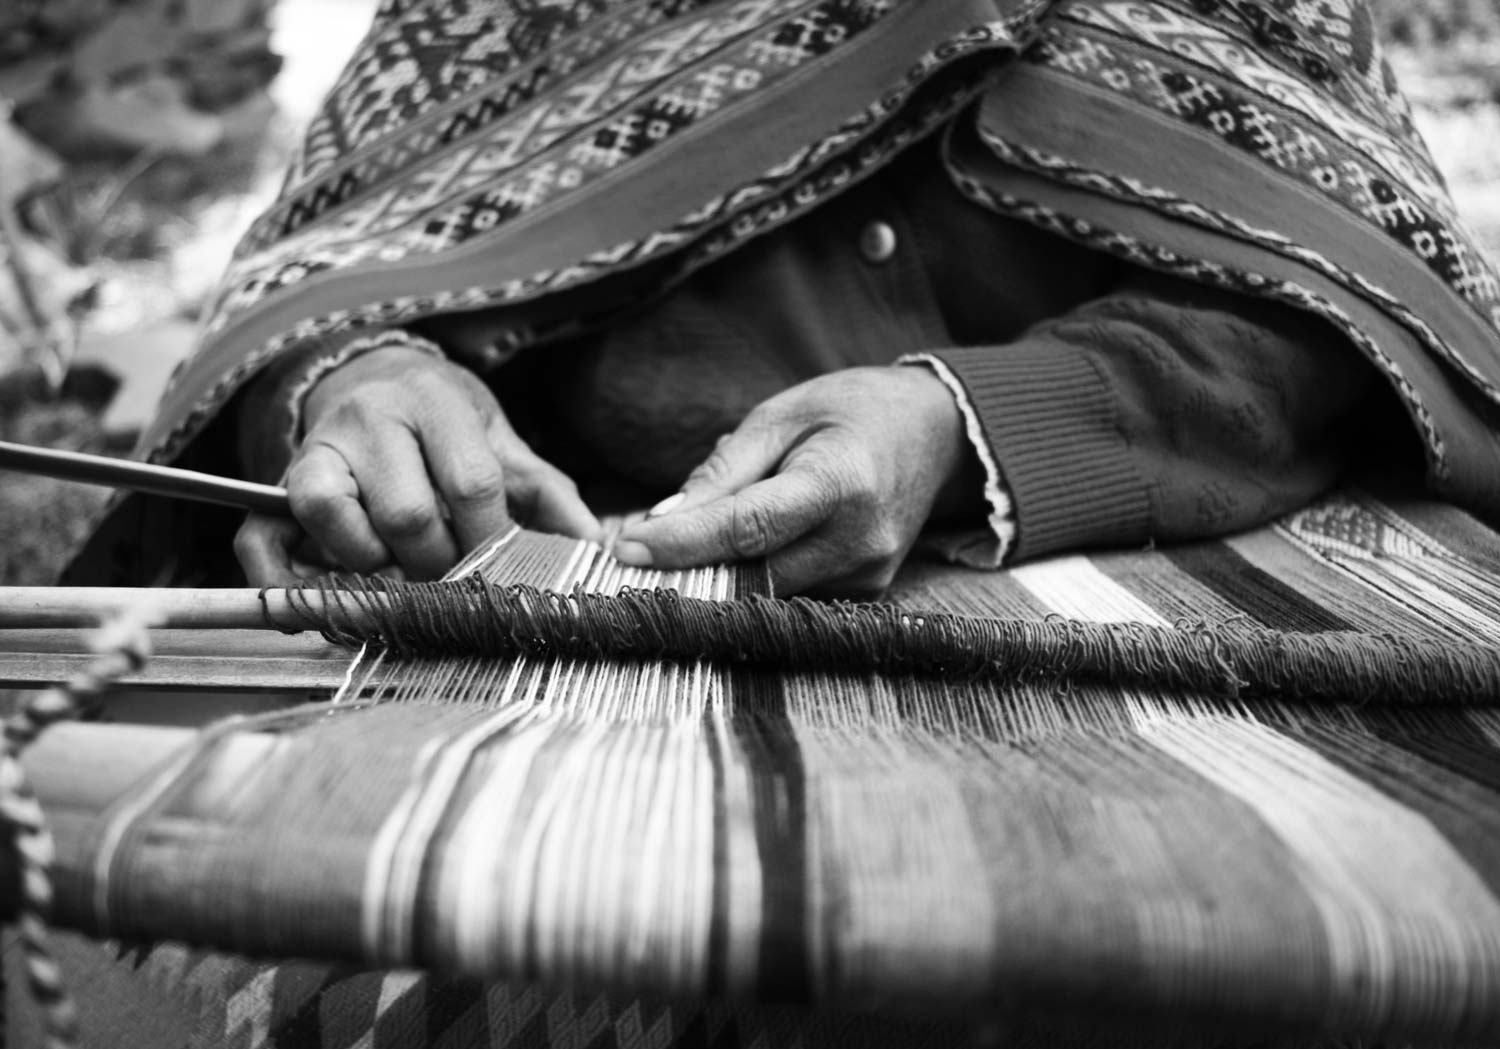 Lap Loom | Peru Fair Trade Clothing and Textile History